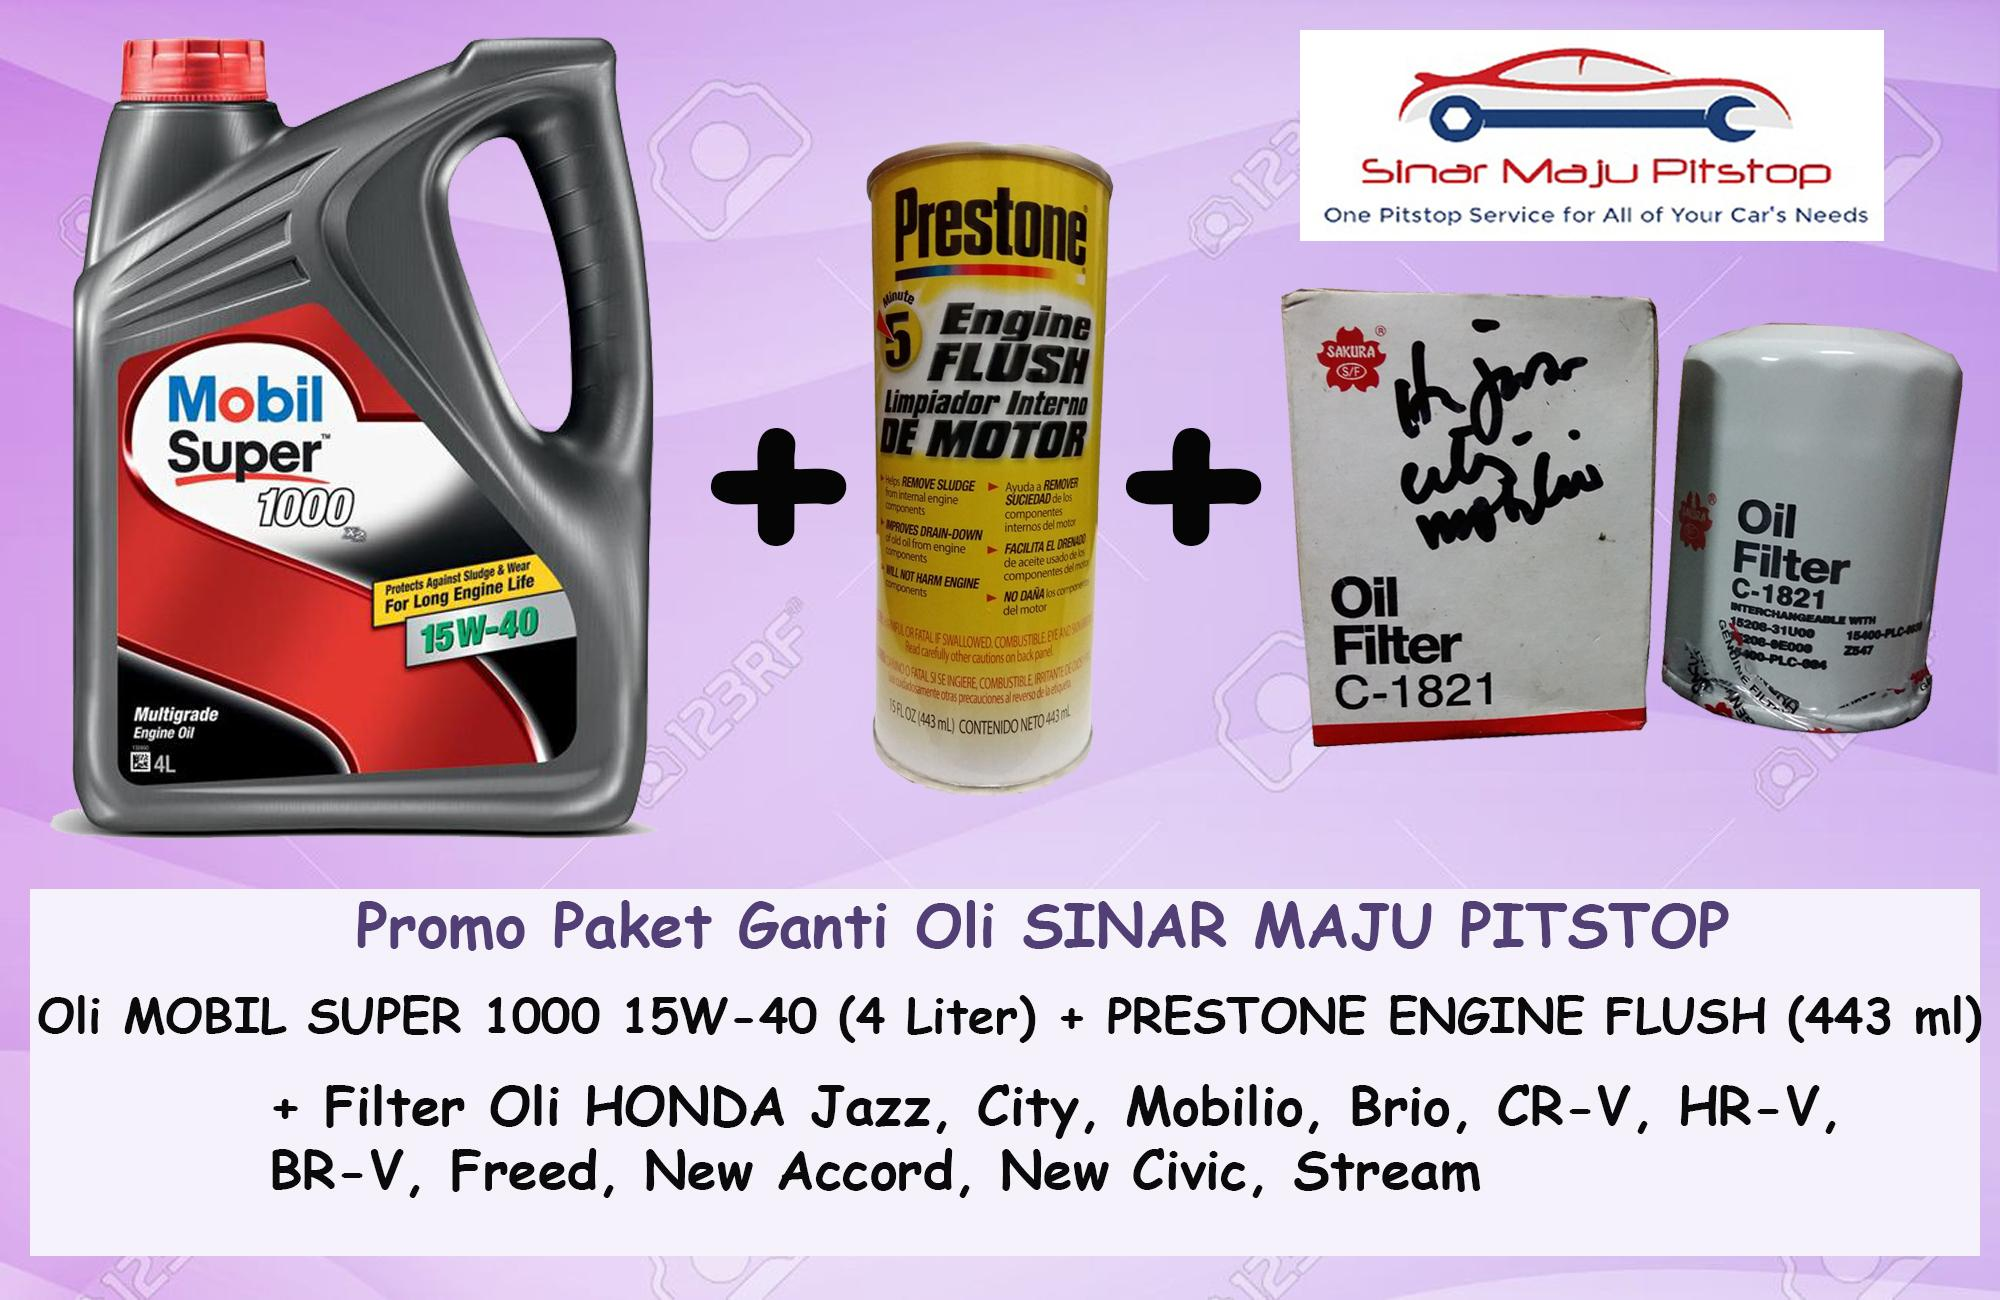 Promo Paket Ganti Oli MOBIL SUPER 1000 15W-40 API SN 4 LITER & Prestone Engine Flush & Filter Oli HONDA ALL NEW JAZZ RS Original